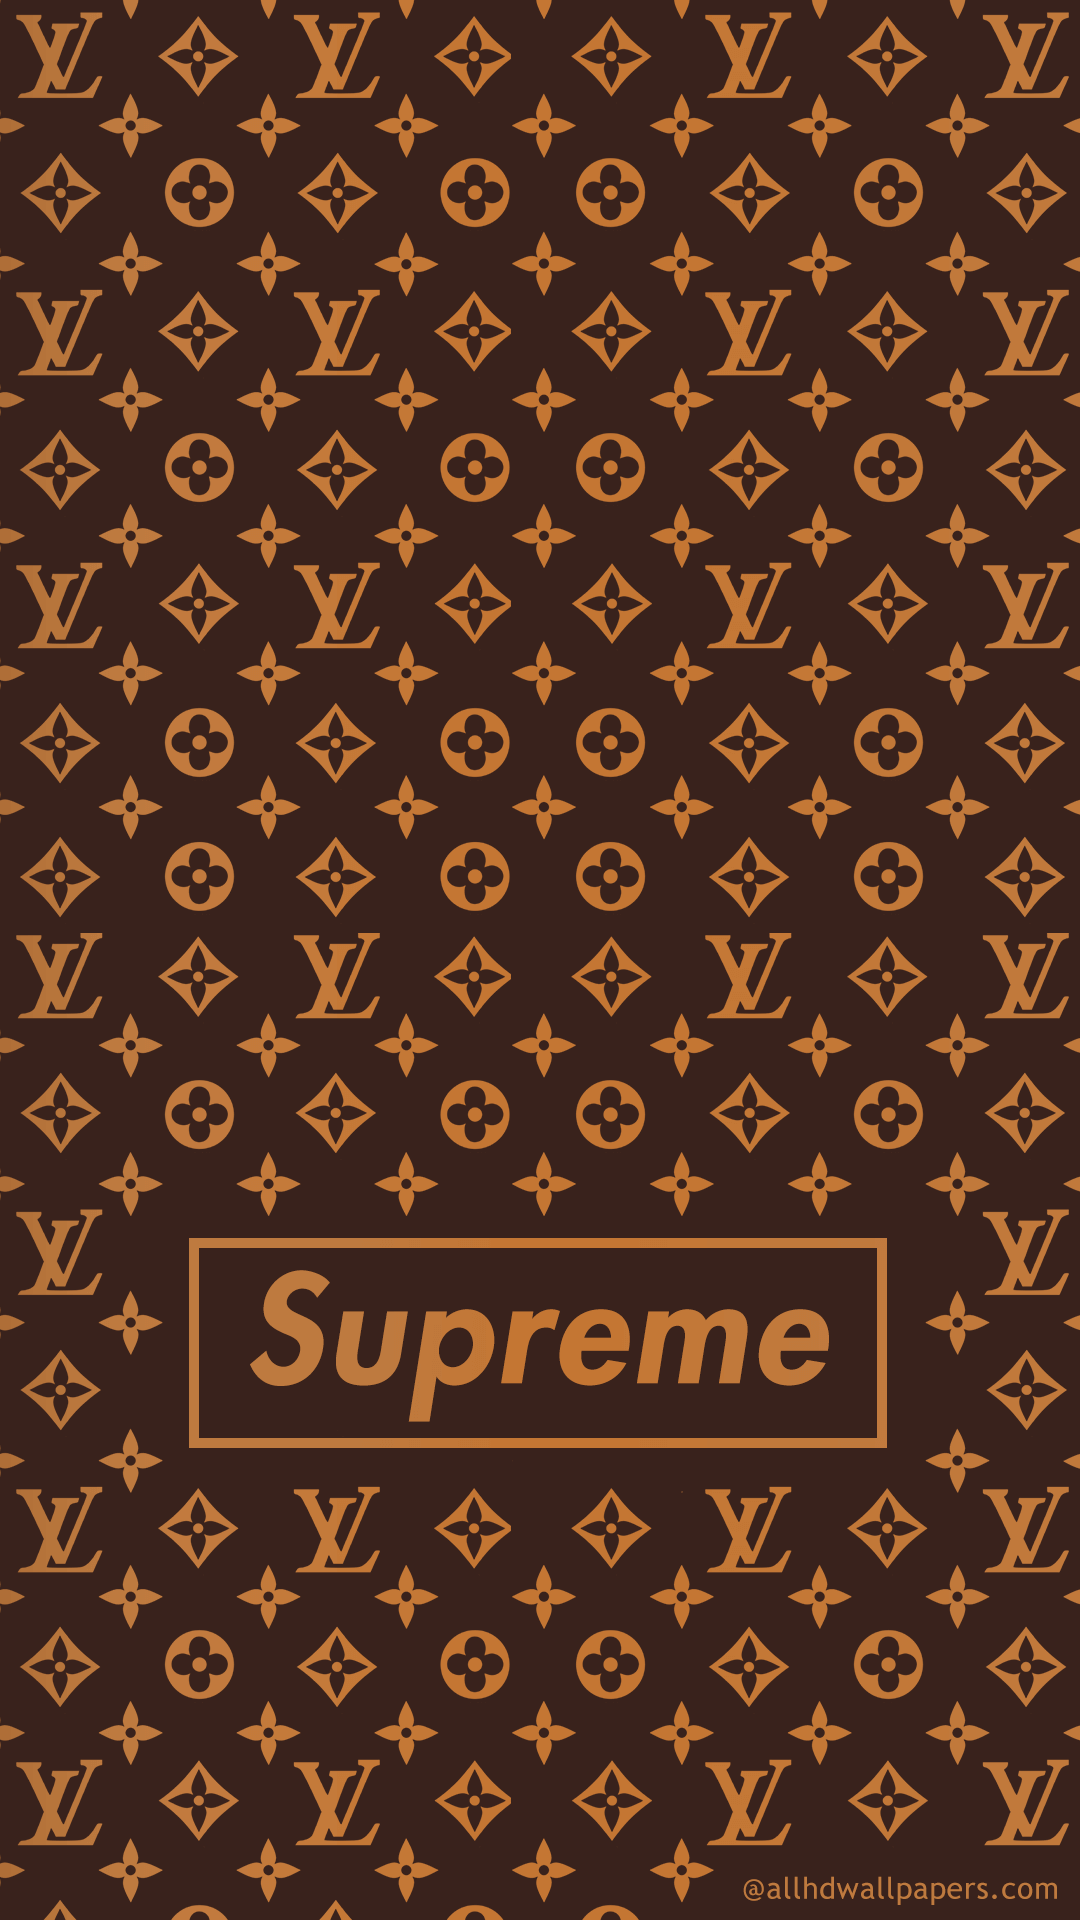 Lv Pattern Mobile Wallpaper Supreme Wallpaper Supreme Iphone Wallpaper Louis Vuitton Iphone Wallpaper